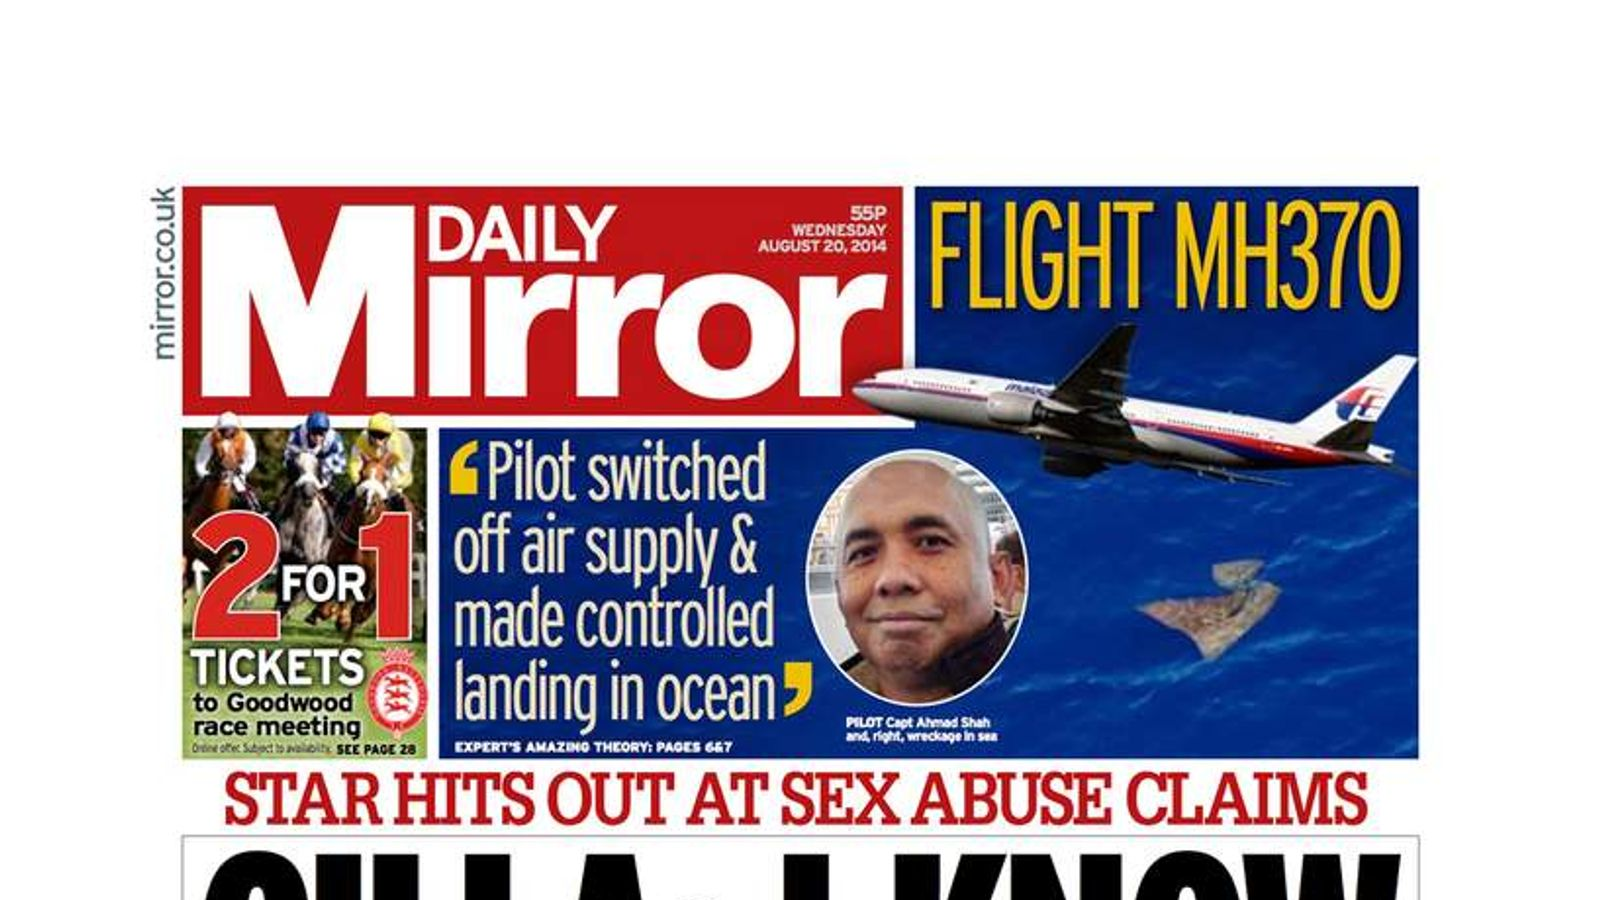 The front page of Wednesday's Daily Mirror